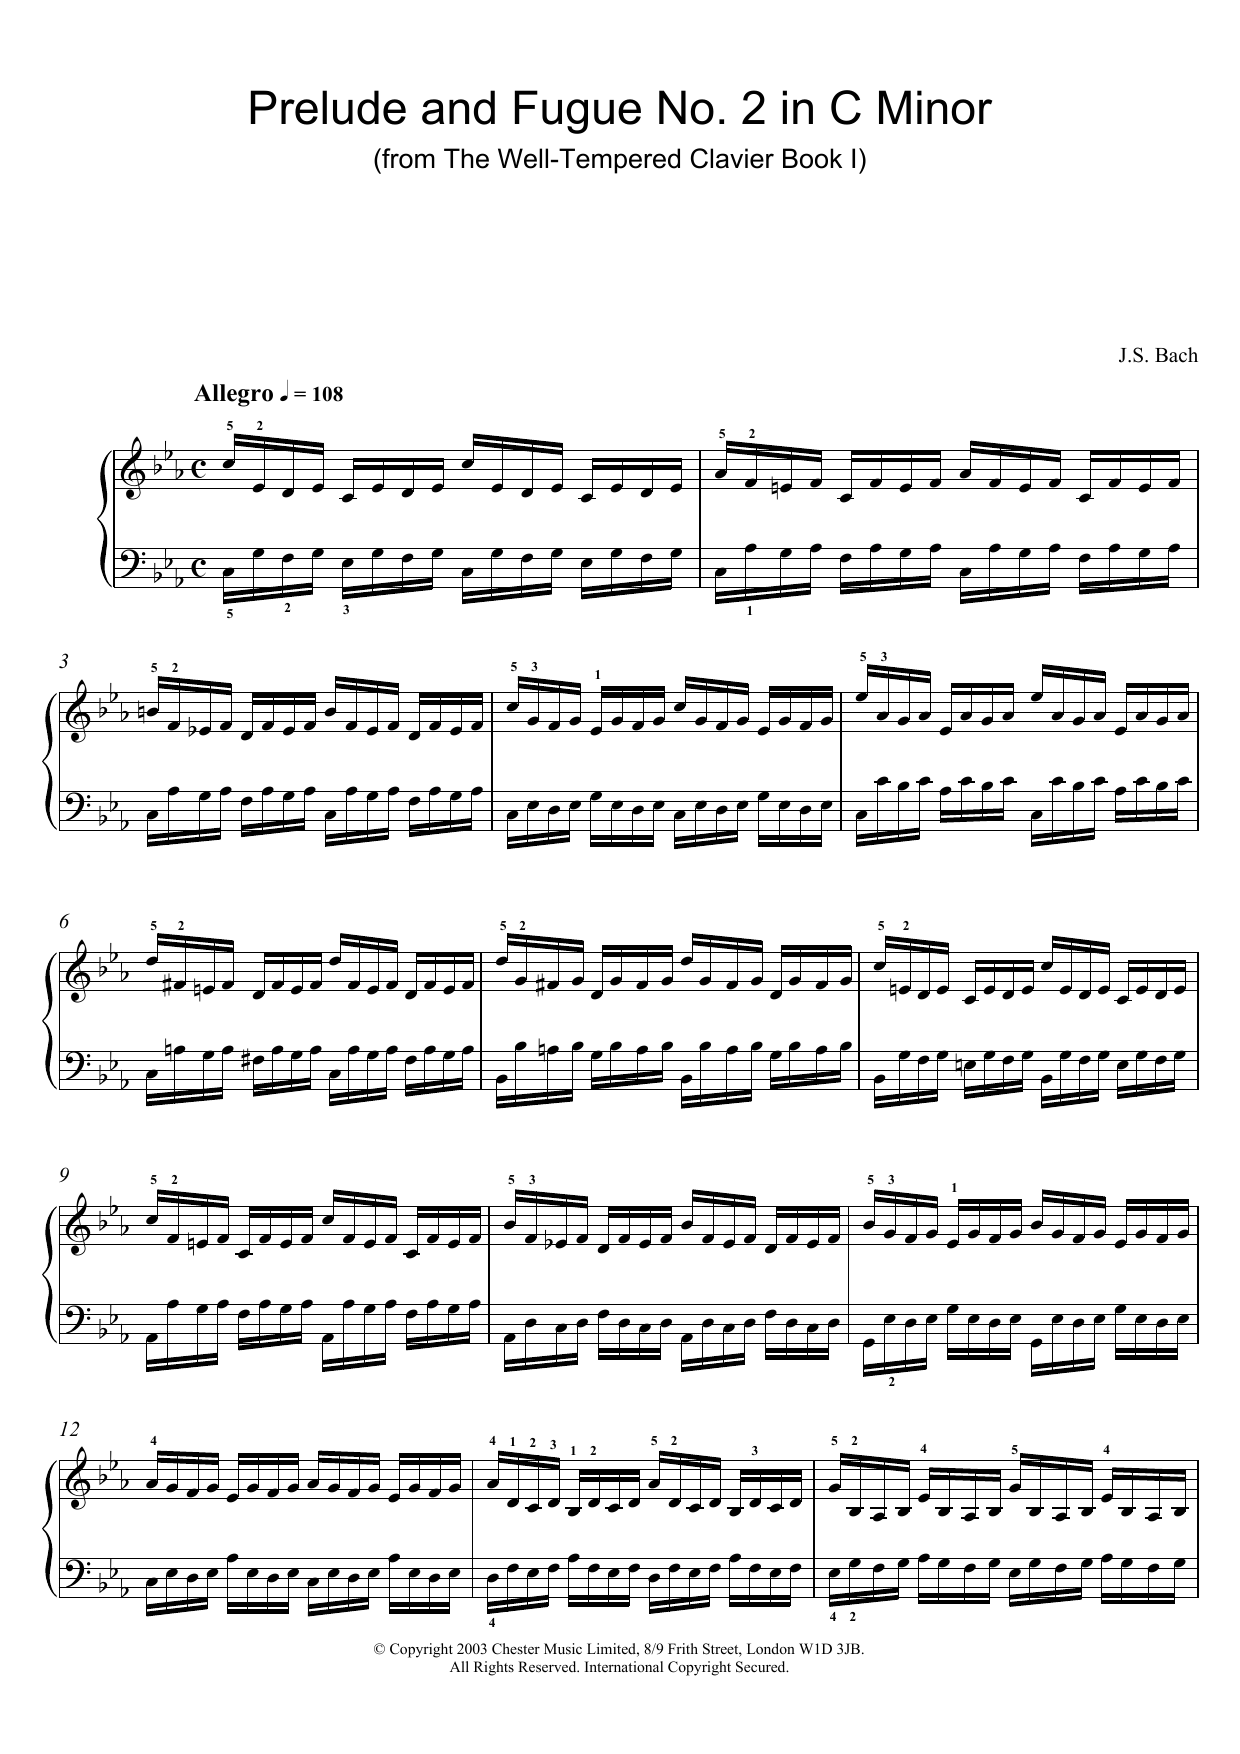 J.S. Bach Prelude and Fugue No.2 in C Minor (from The Well-Tempered Clavier, Bk.1) sheet music preview music notes and score for Piano including 5 page(s)